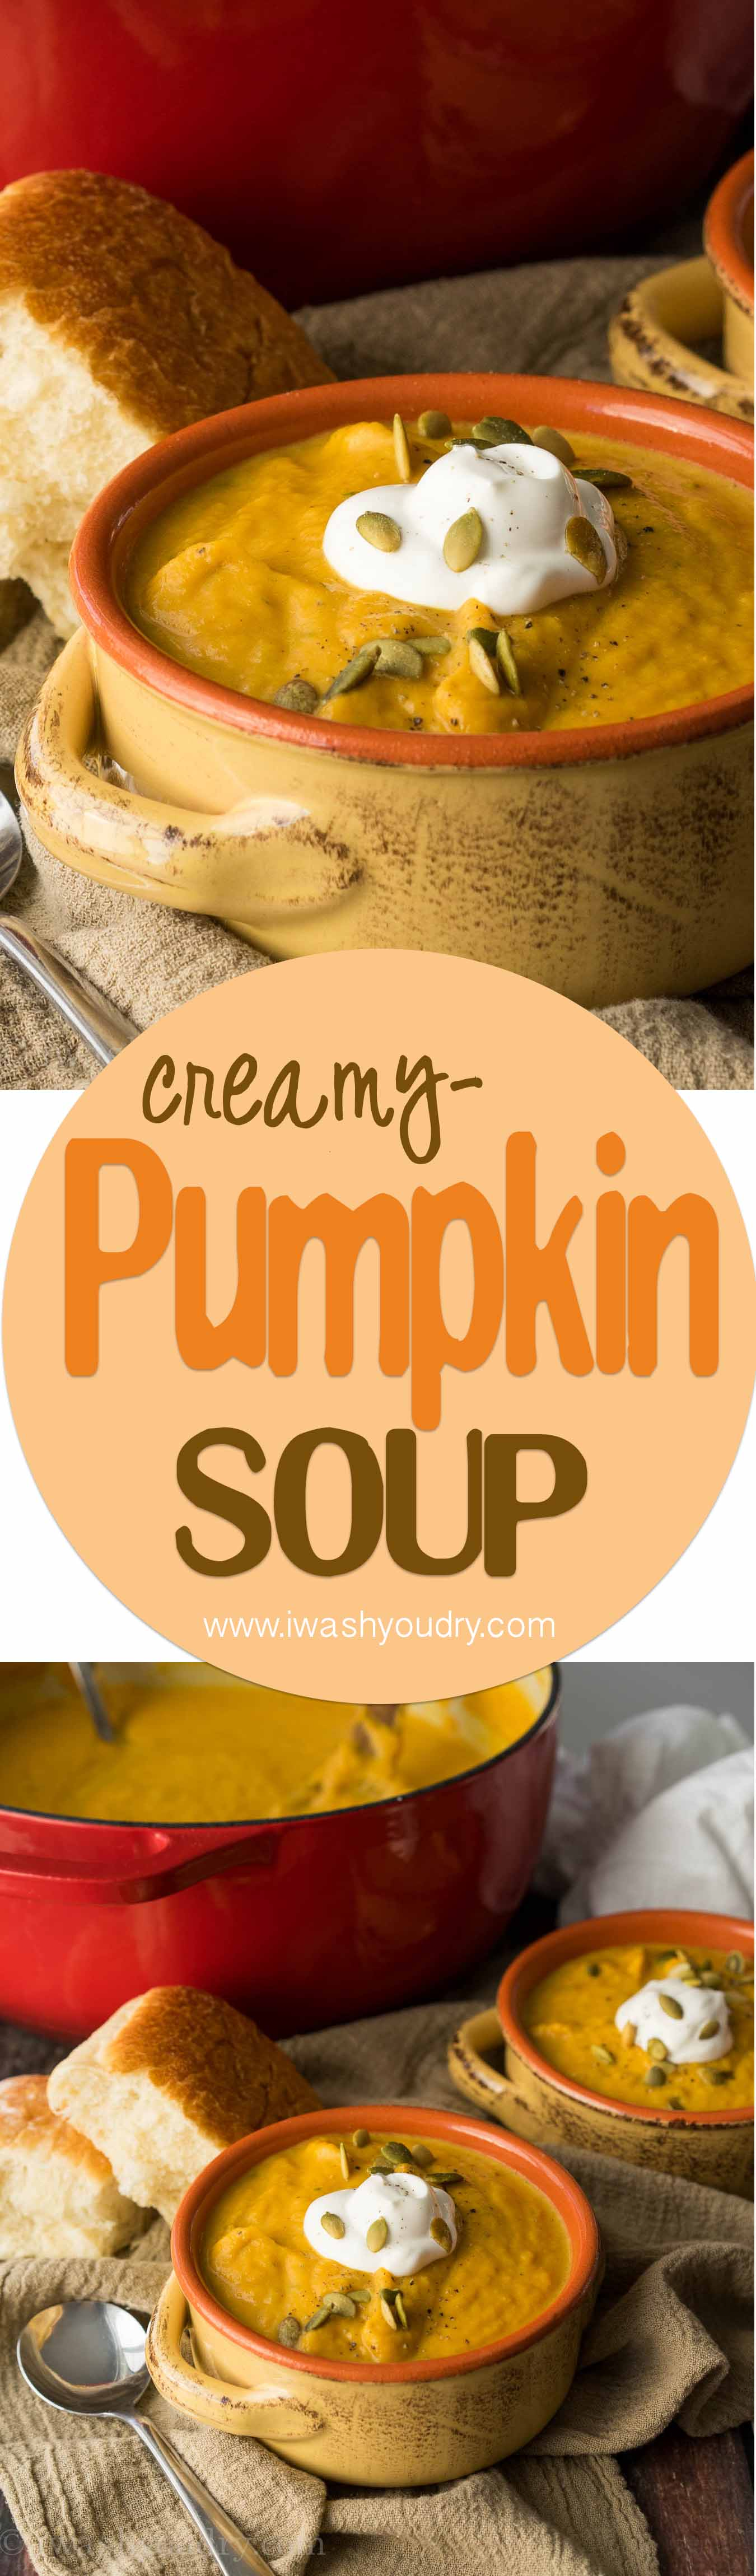 This Creamy Pumpkin and Acorn Squash Soup is the perfect recipe to warm up on a cold winter's night! I love the roasted pepitas on top!